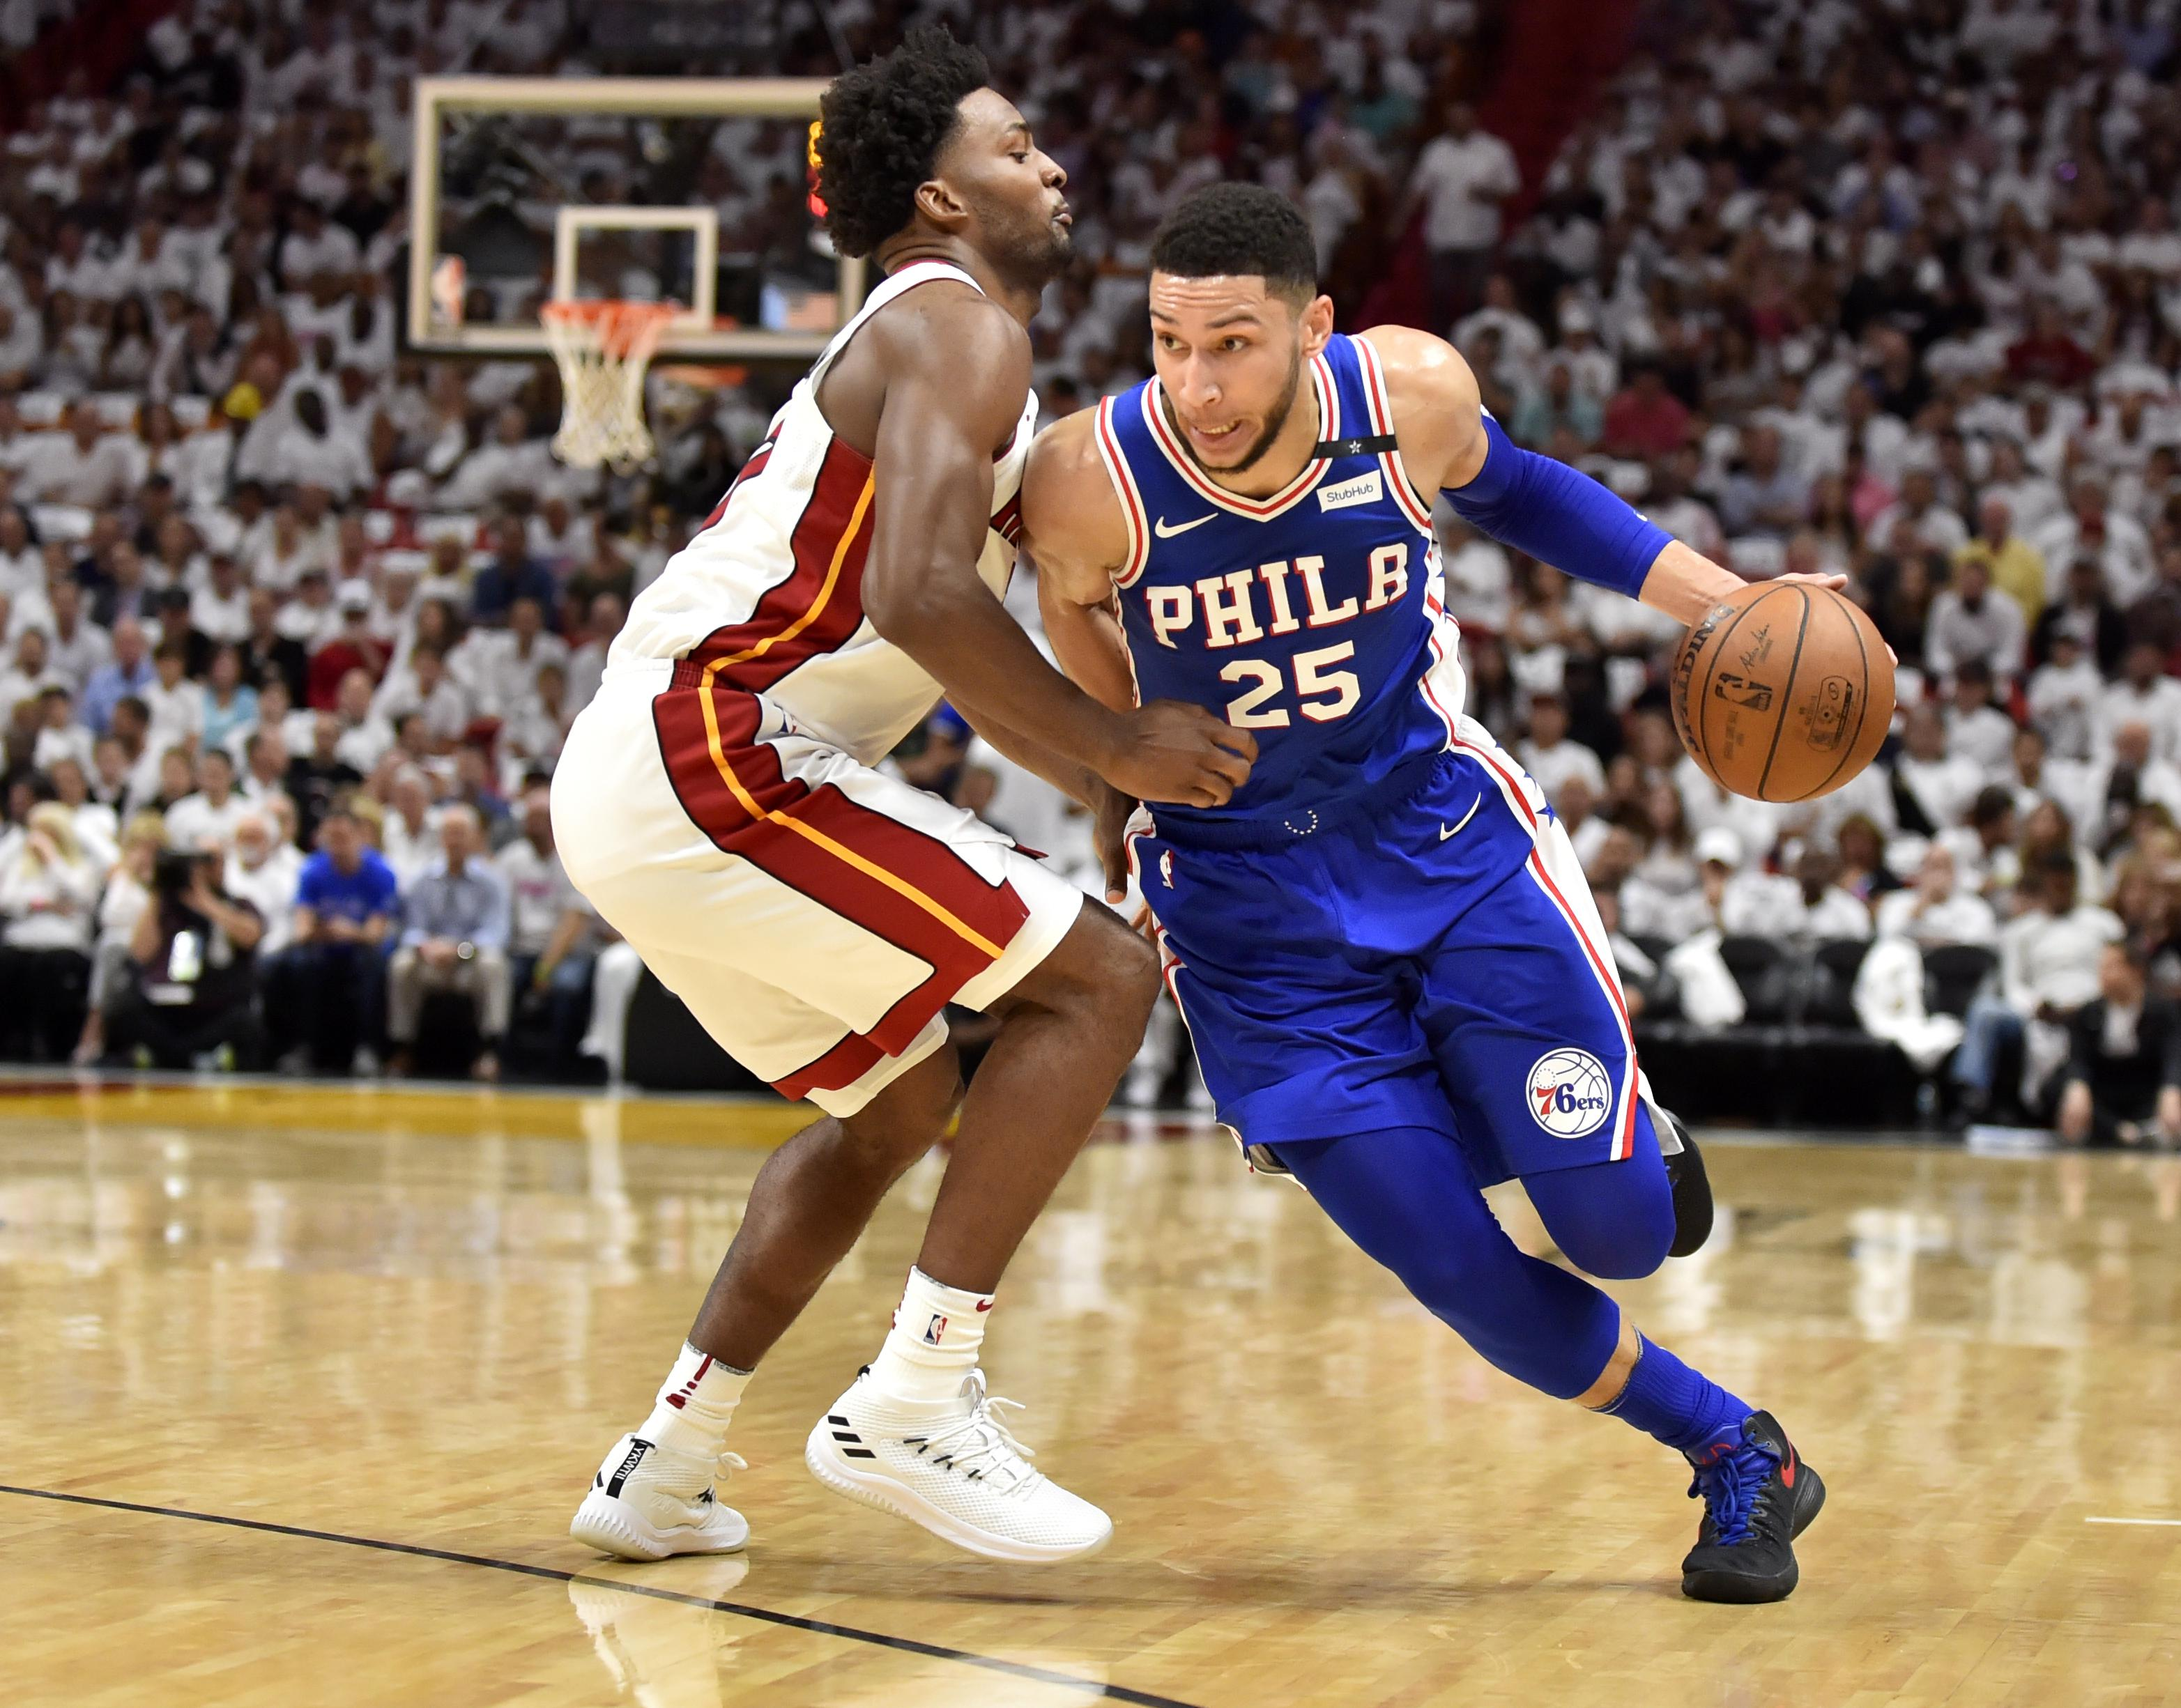 MIAMI, FL - APRIL 19: Ben Simmons #25 of the Philadelphia 76ers drives to the basket while being defended by Justise Winslow #20 of the Miami Heat during the first quarter of the game at American Airlines Arena on April 19, 2018 in Miami, Florida. NOTE TO USER: User expressly acknowledges and agrees that, by downloading and or using this photograph, User is consenting to the terms and conditions of the Getty Images License Agreement. (Photo by Eric Espada/Getty Images)